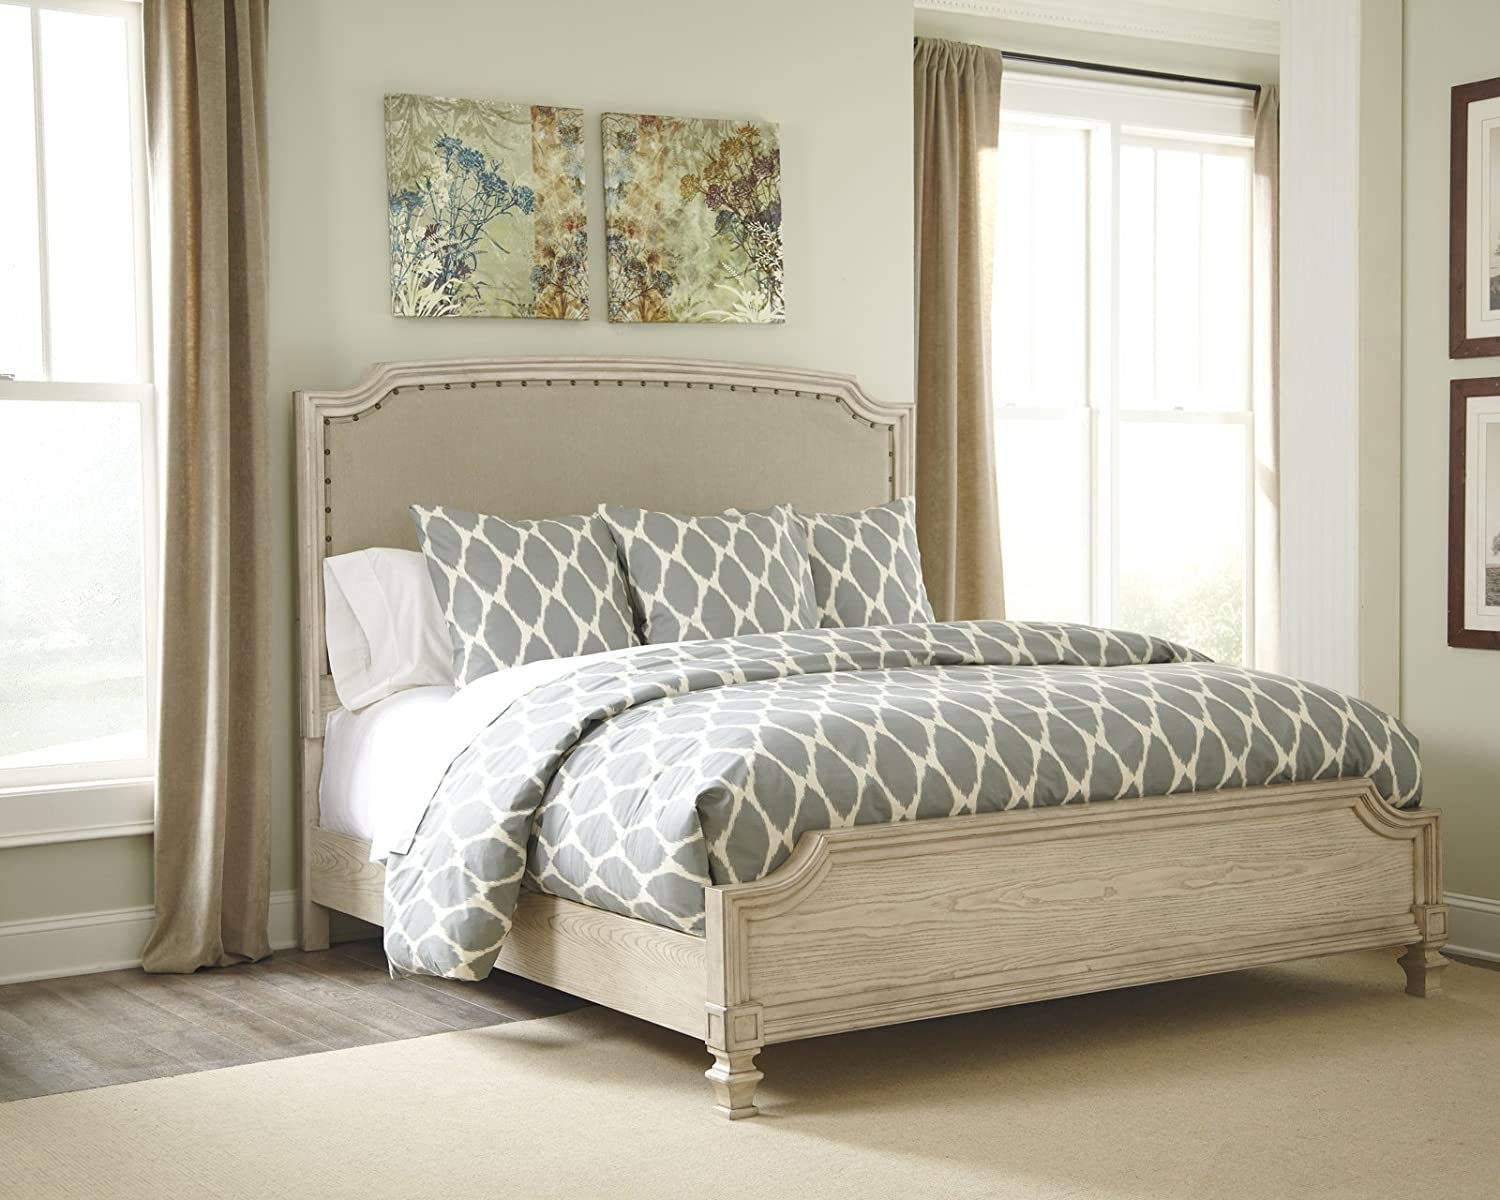 Ashley B693 Demarlos 4 pc King Bedroom Set - In Home White Glove Delivery  Included